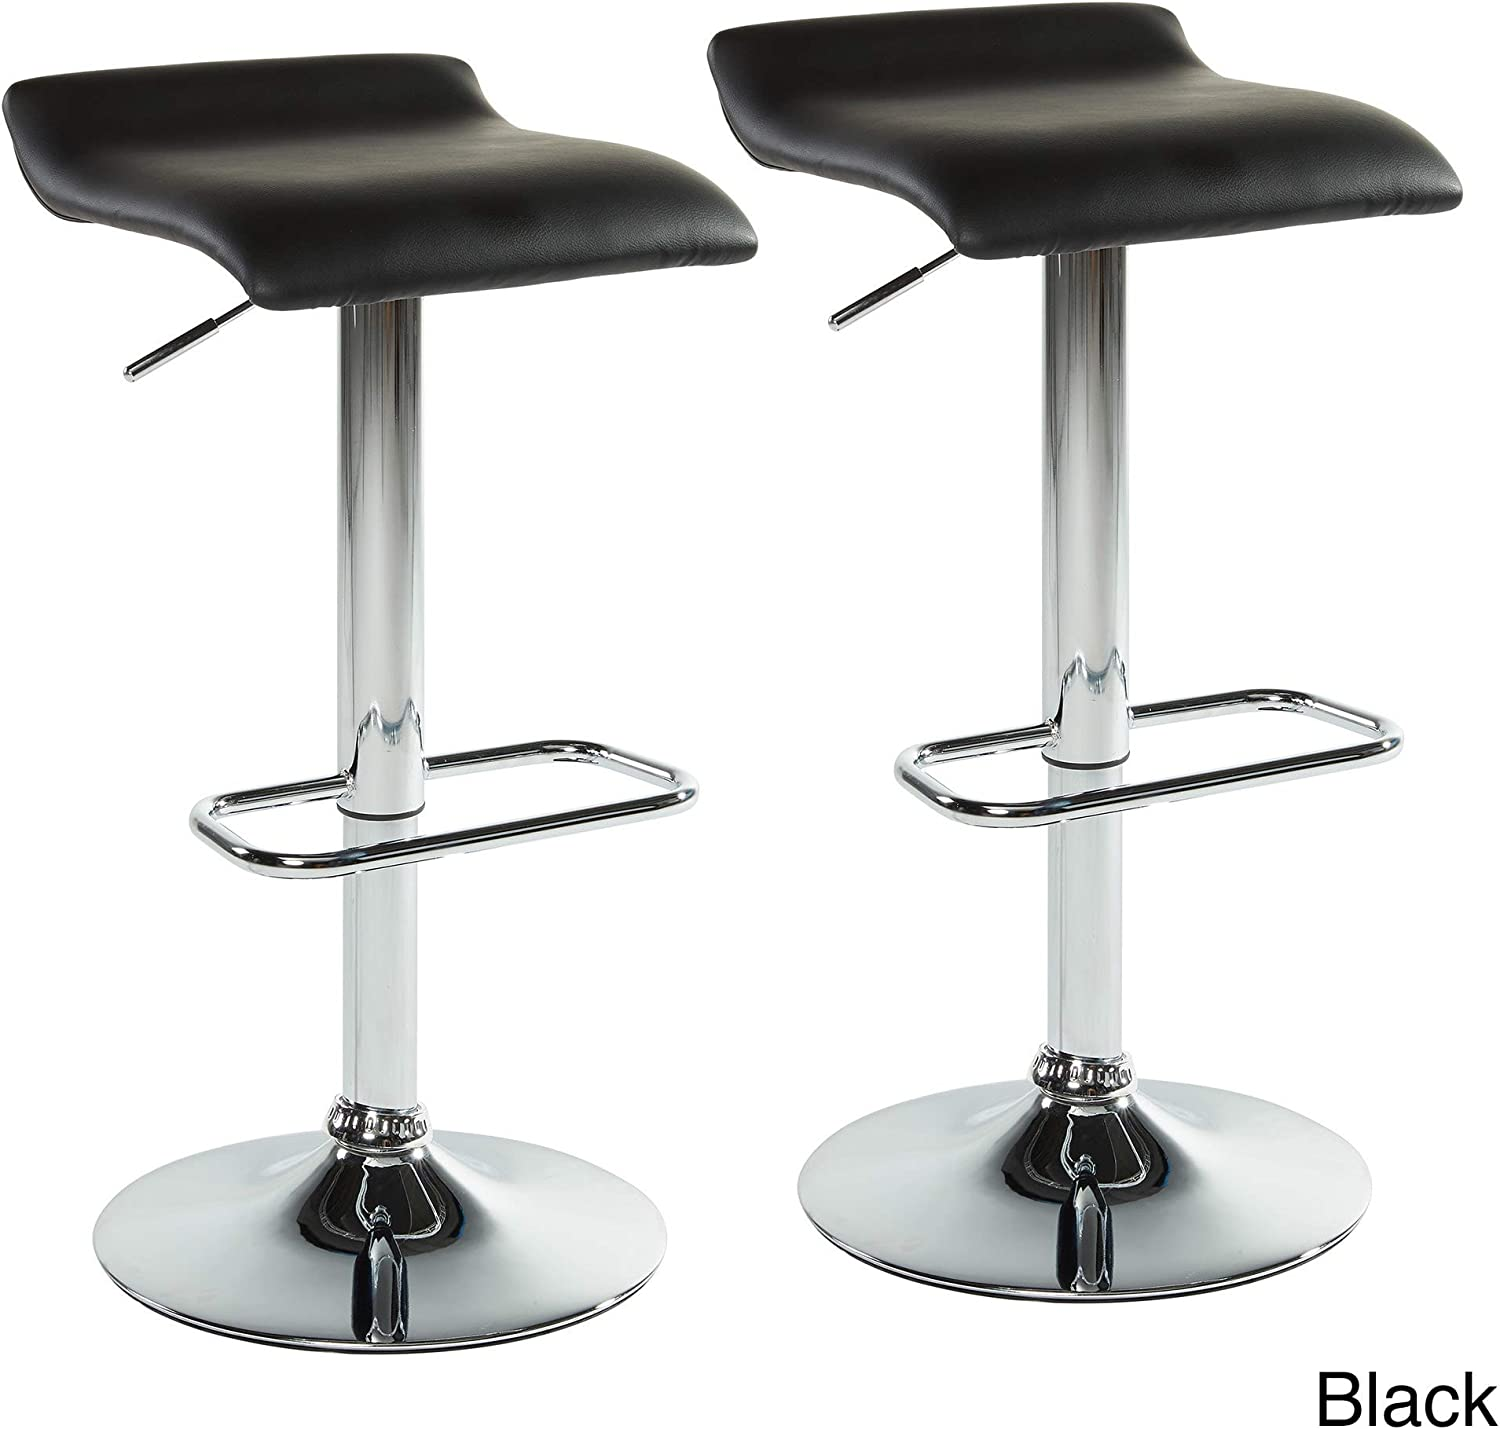 Worldwide Homefurnishings Inc. Adjustable Stool in Black - Set of 2